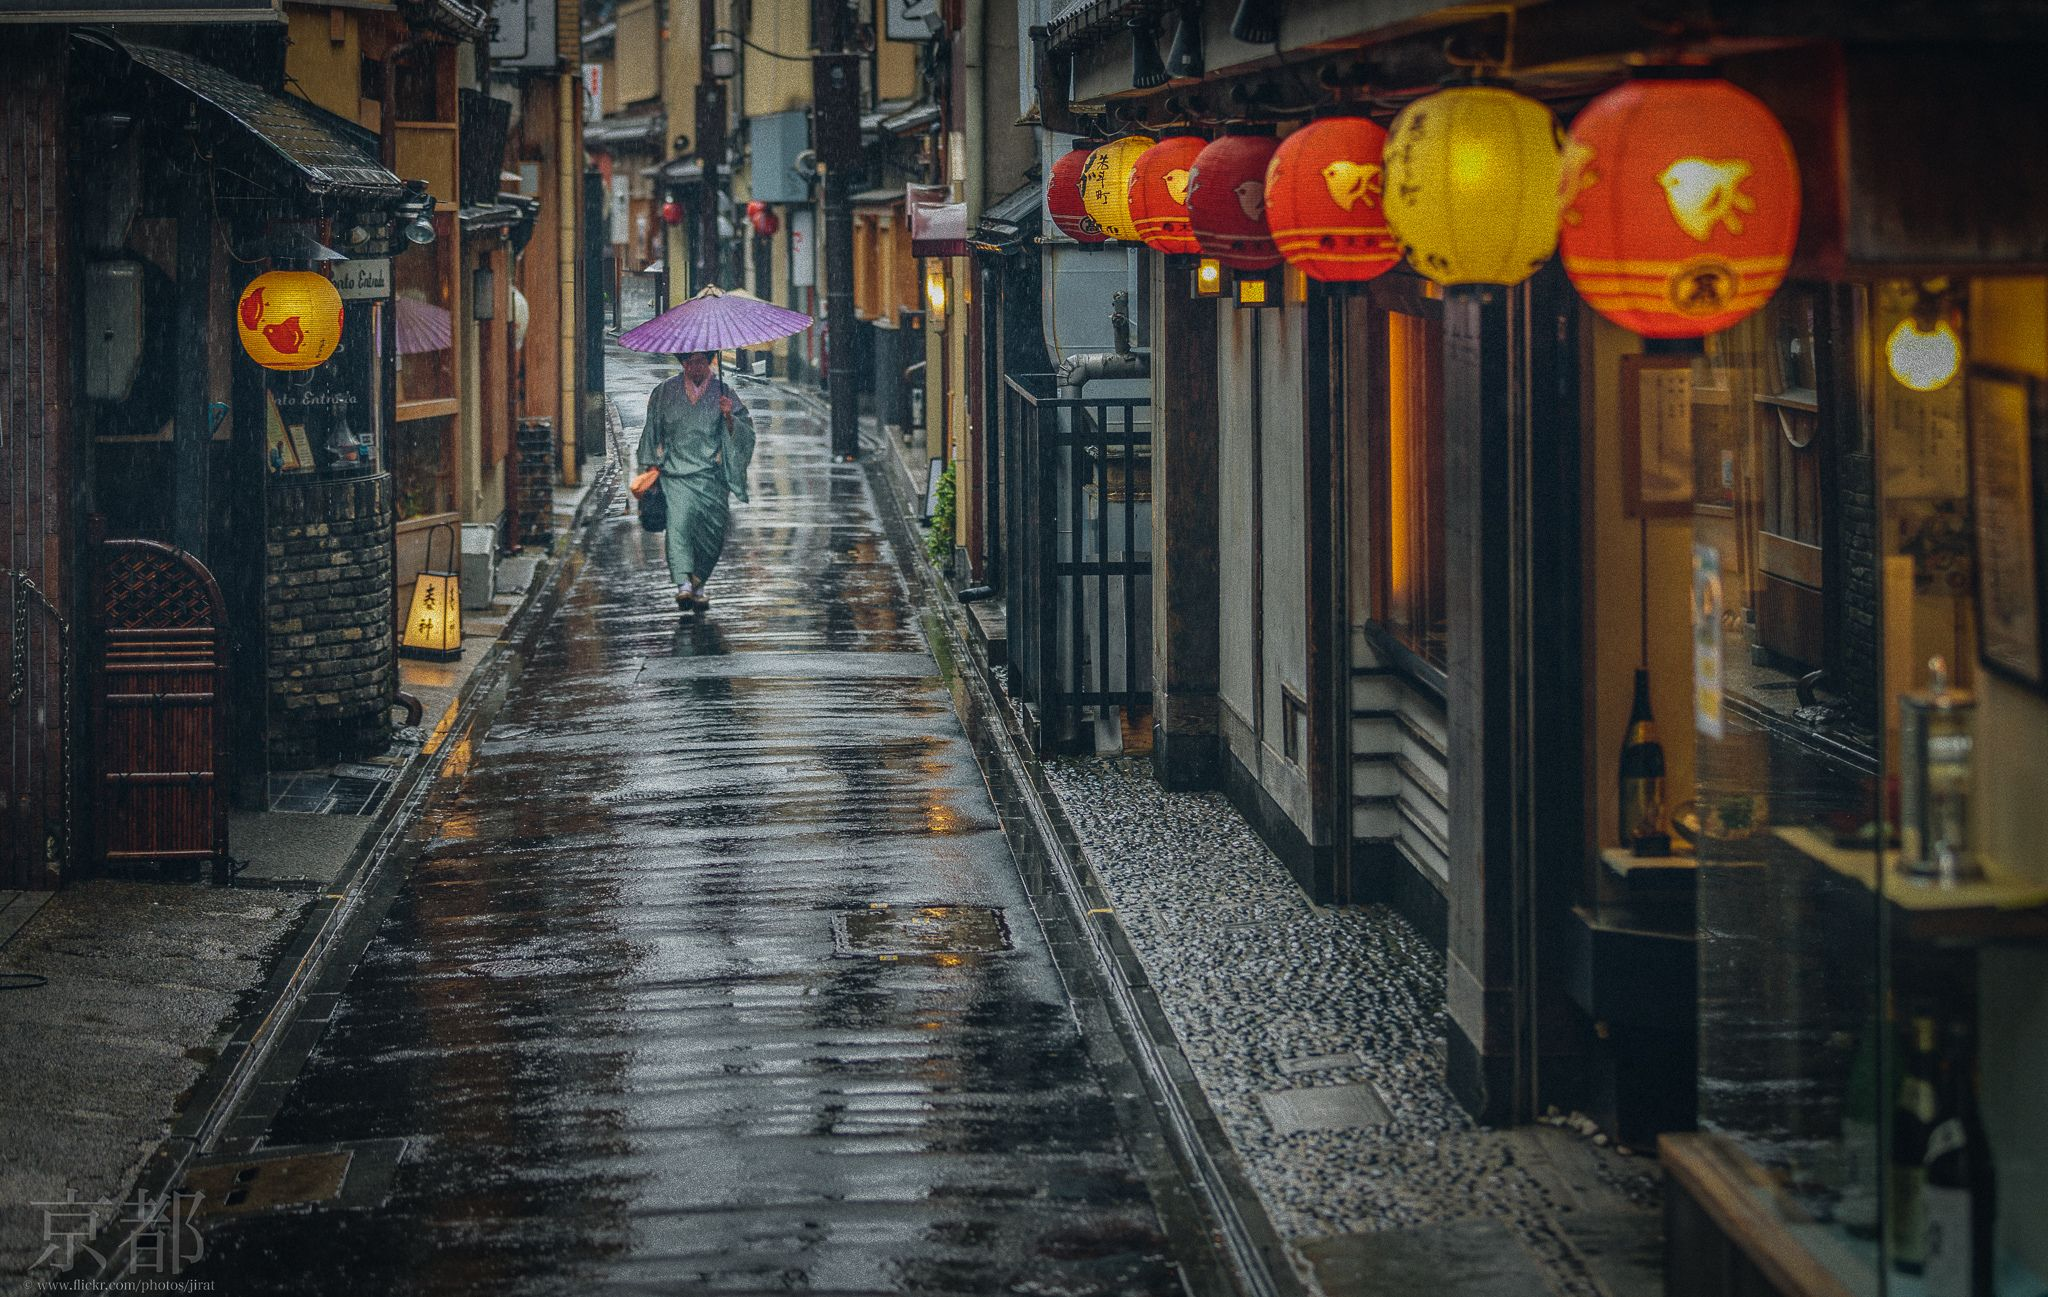 Kyoto in a raining day by Jiratto